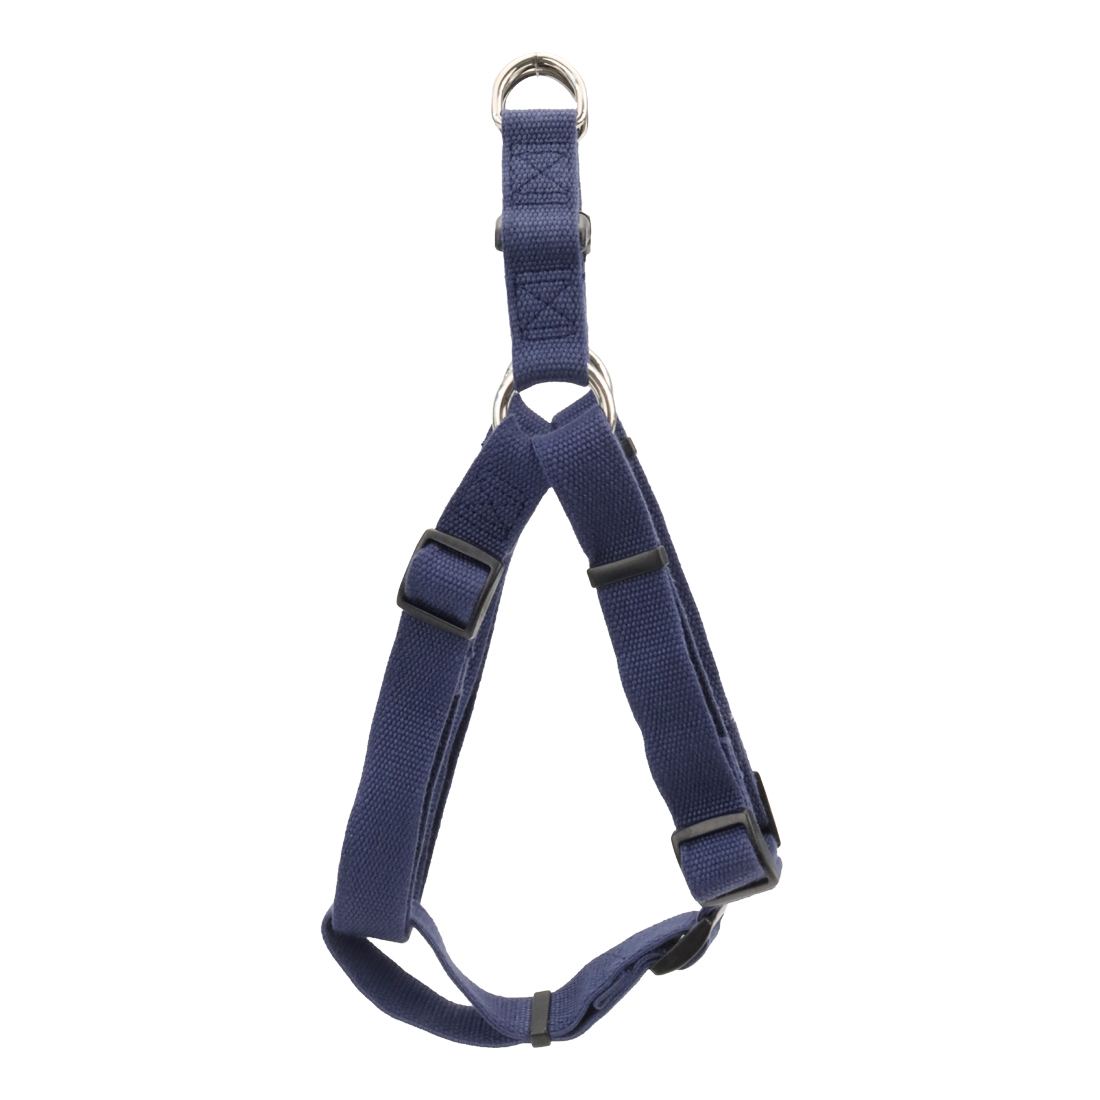 New Earth Soy Comfort Wrap Adjustable Dog Harness, Indigo Image